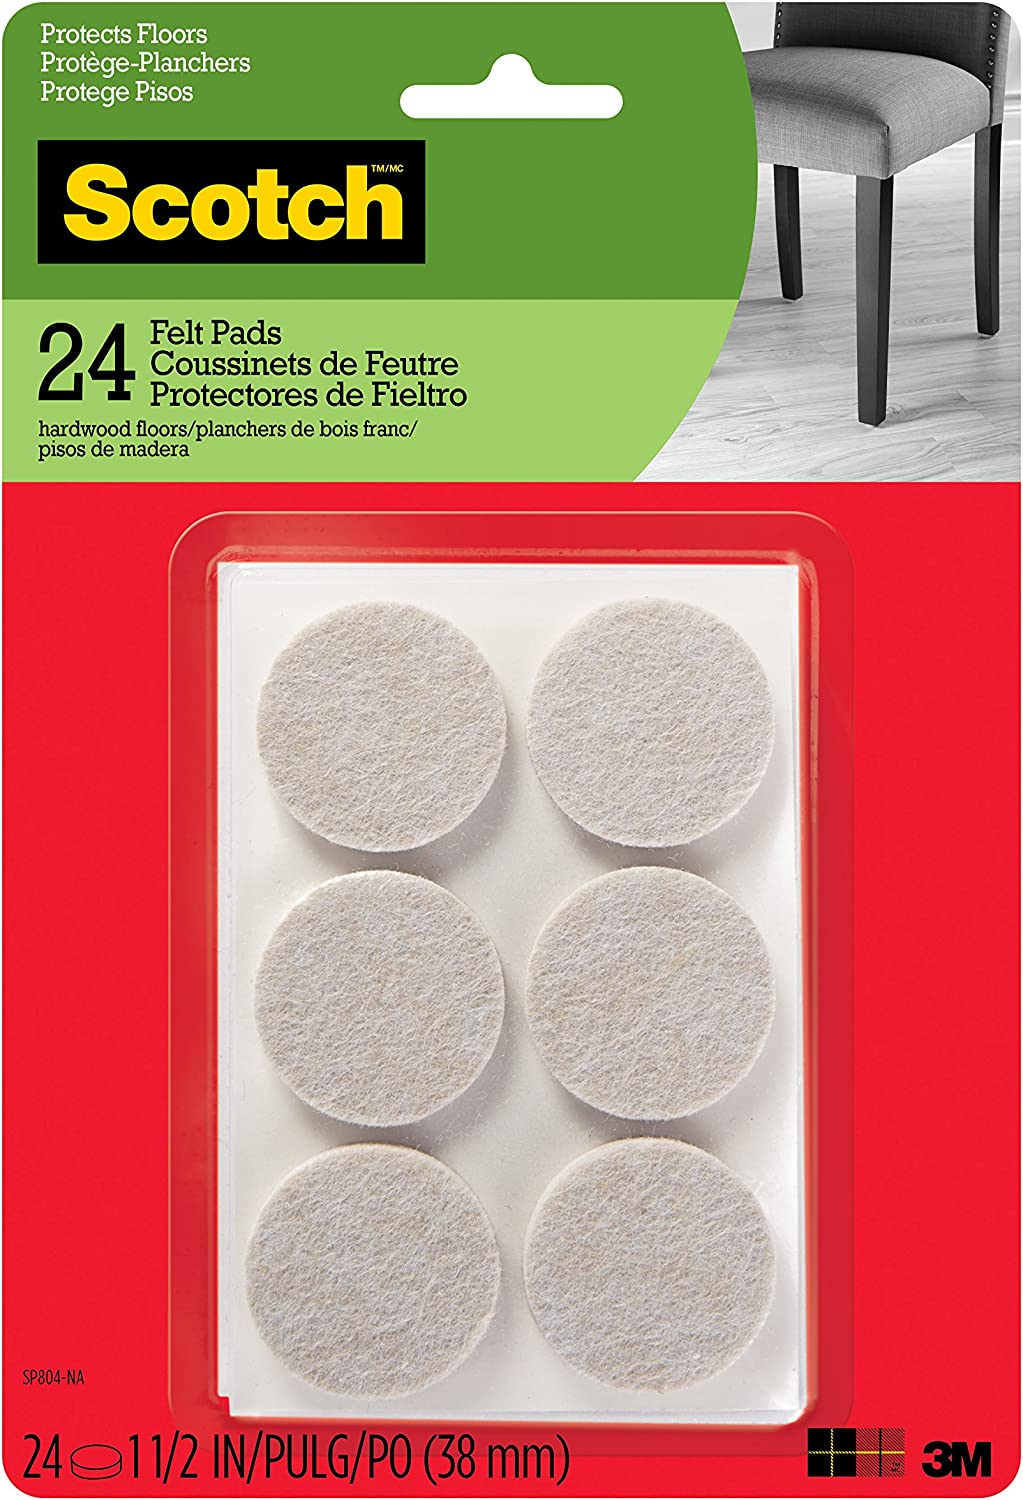 Scotch Felt Pads Furniture Hardwood Max 42% OFF New arrival Fl Protecting for